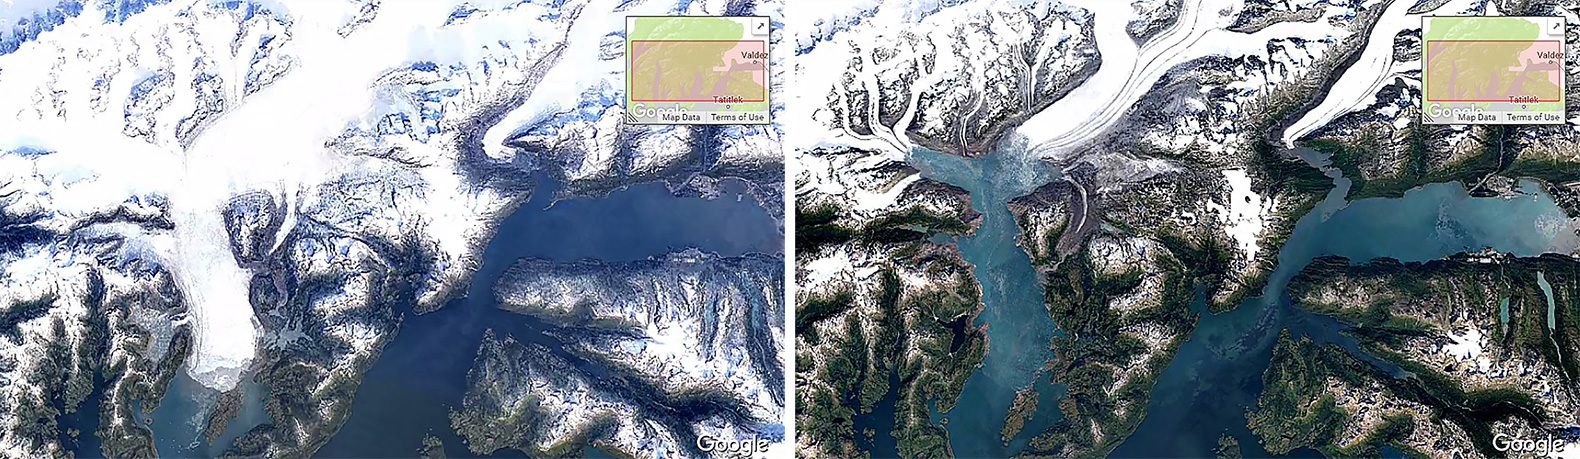 google timelapse shows how humans have destroyed earth over 32 years